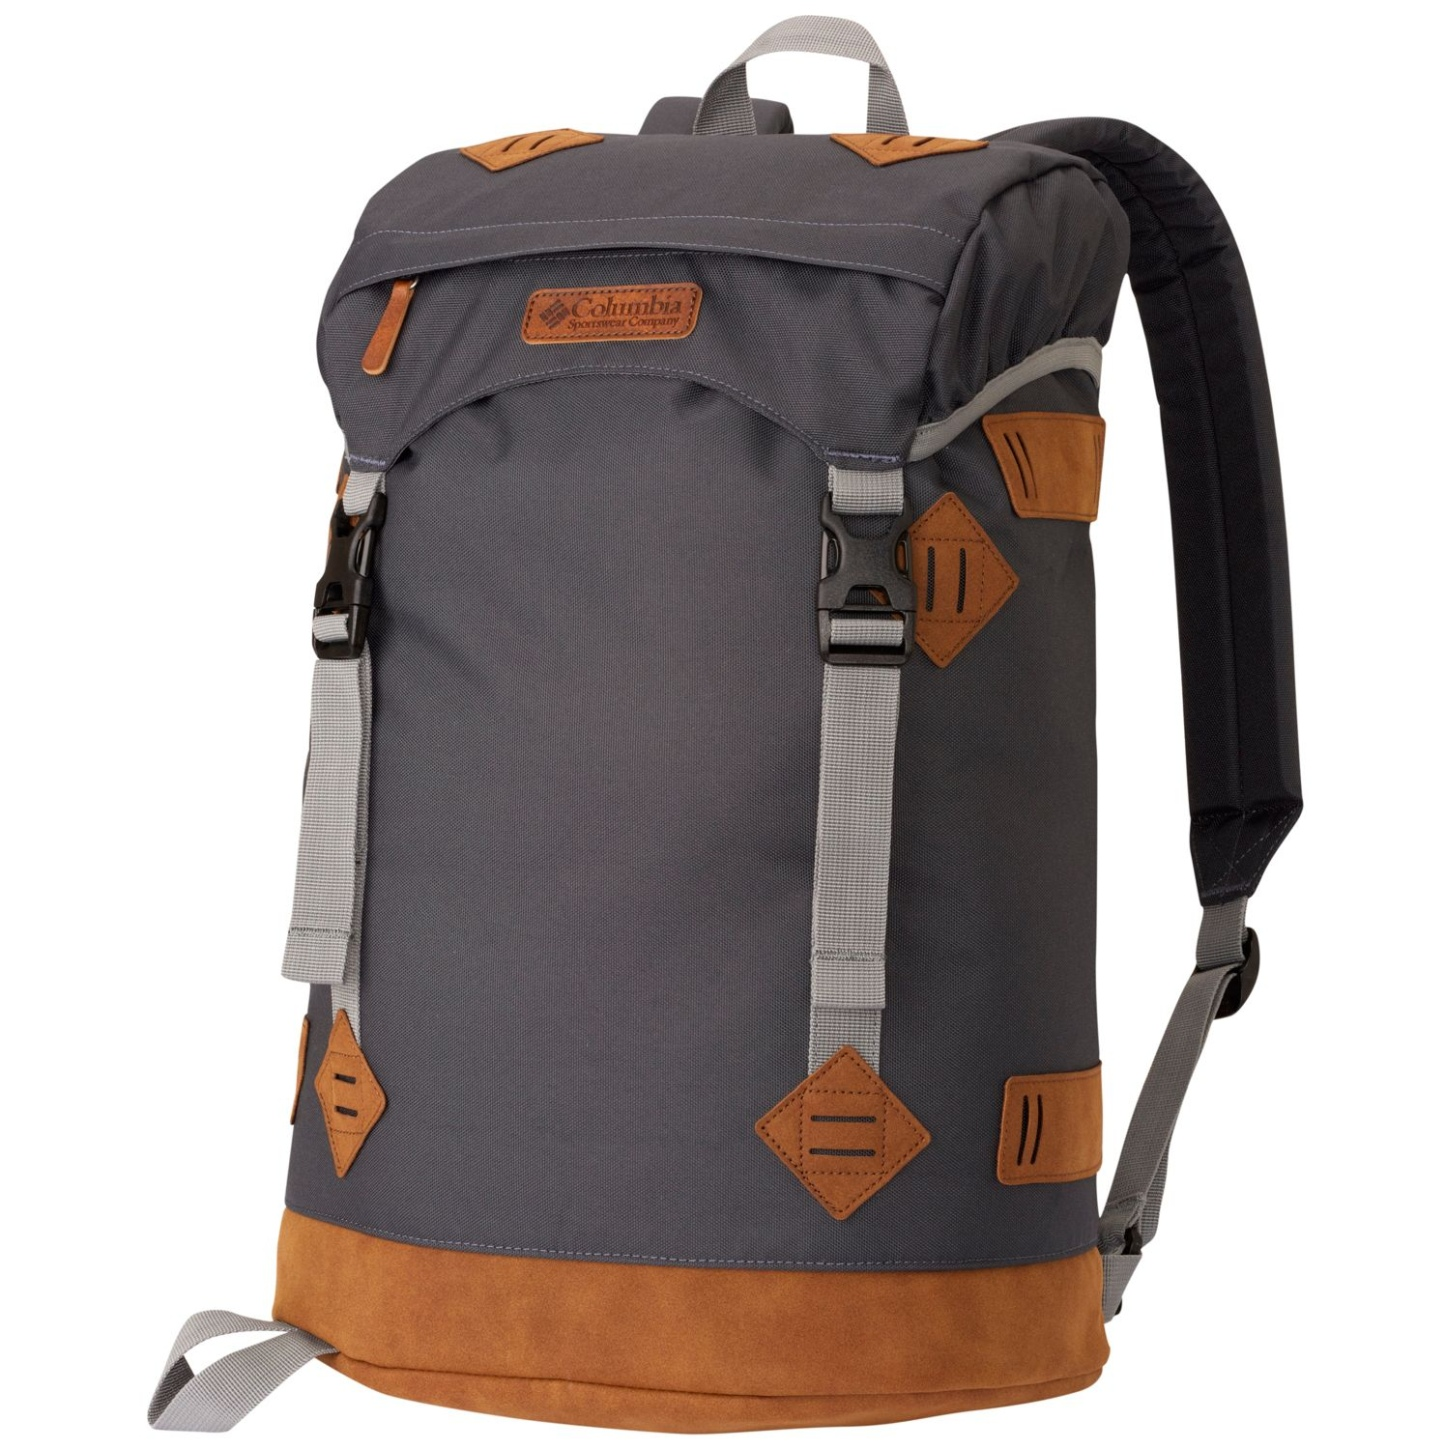 Columbia Classic Outdoor 25L Pack Shark-30